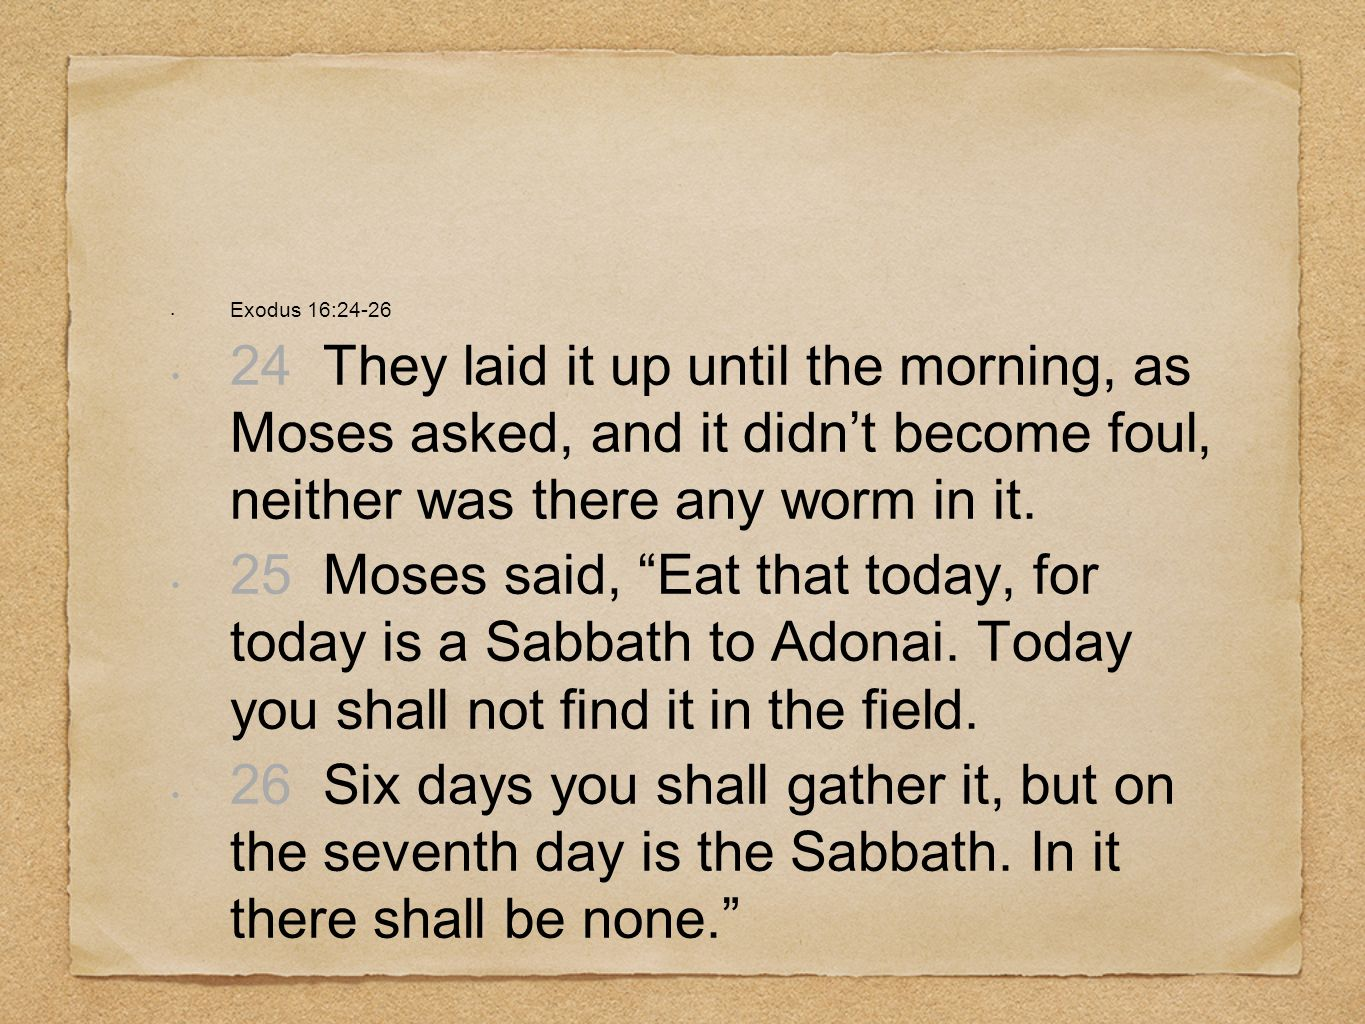 Exodus 16:24-26 24 They laid it up until the morning, as Moses asked, and it didn't become foul, neither was there any worm in it.